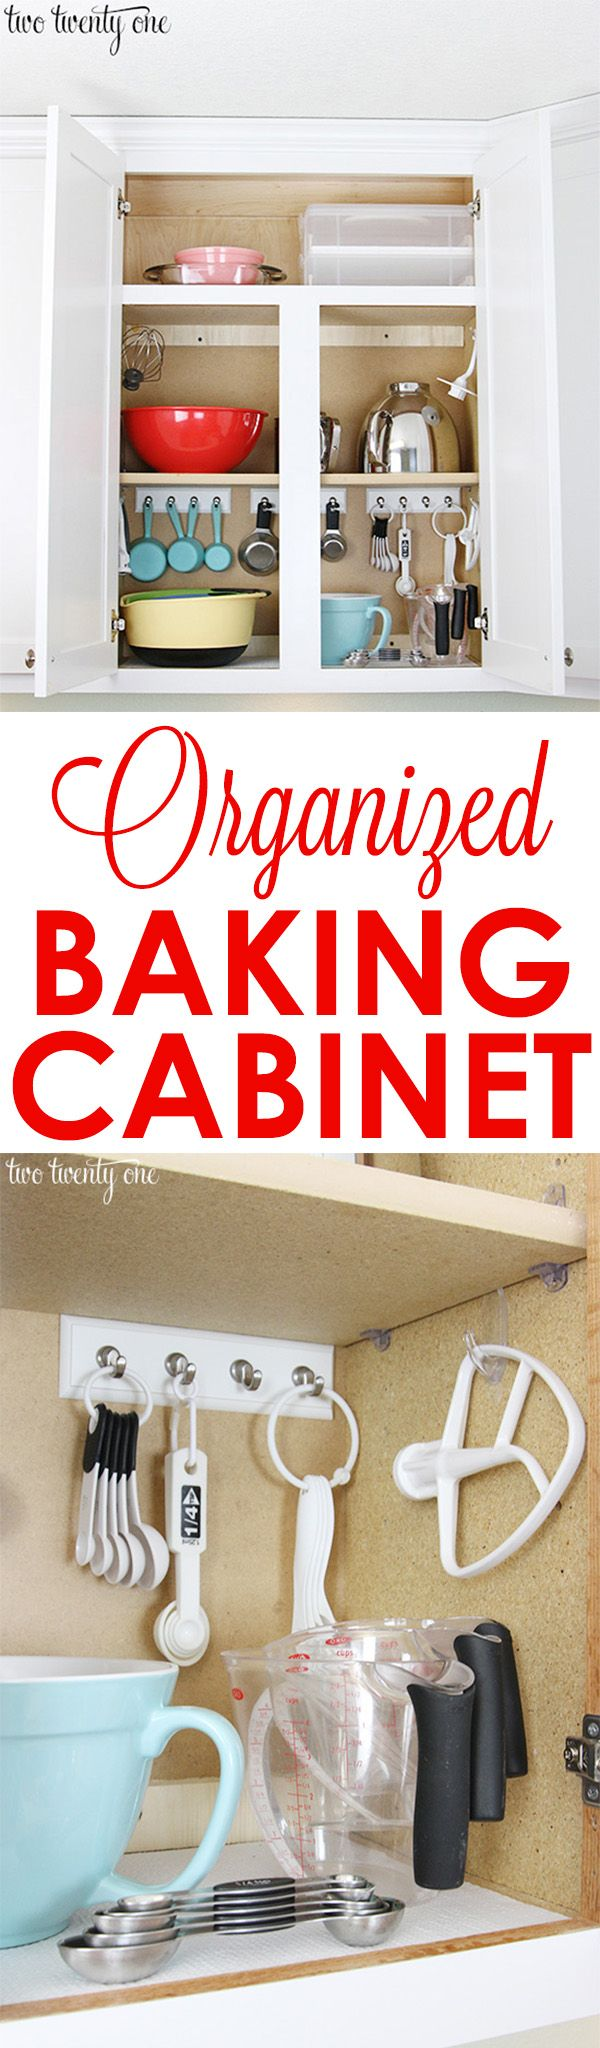 Best 25+ Baking storage ideas on Pinterest | Baking organization ...